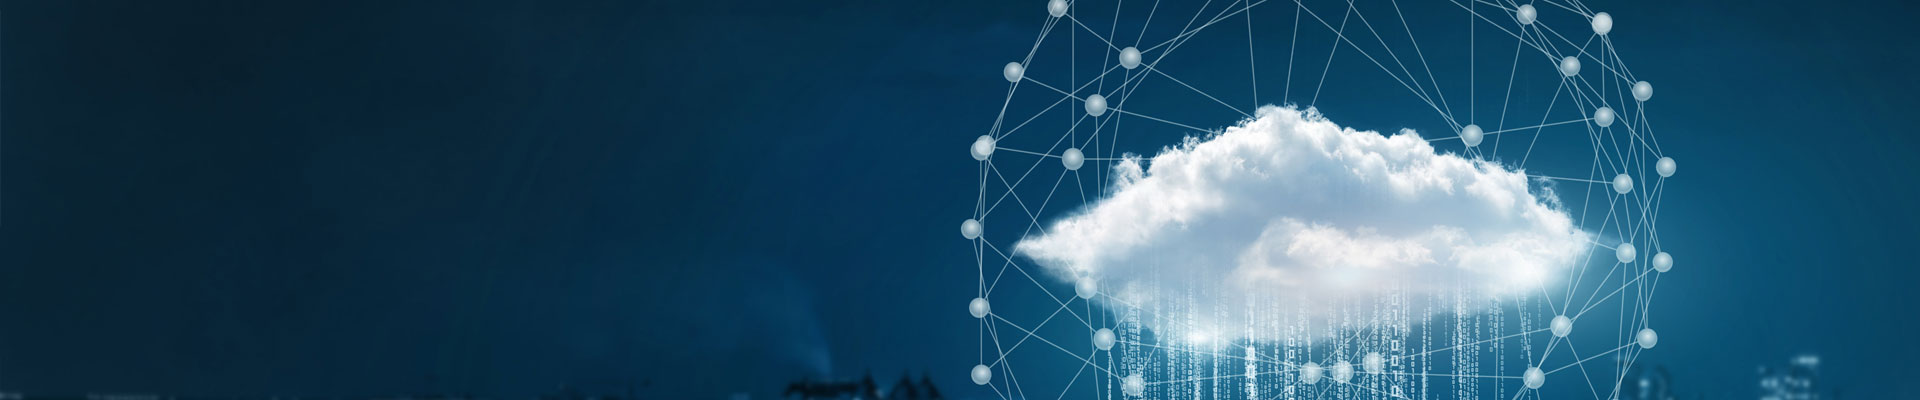 lco-cloud-solutions-banner-background